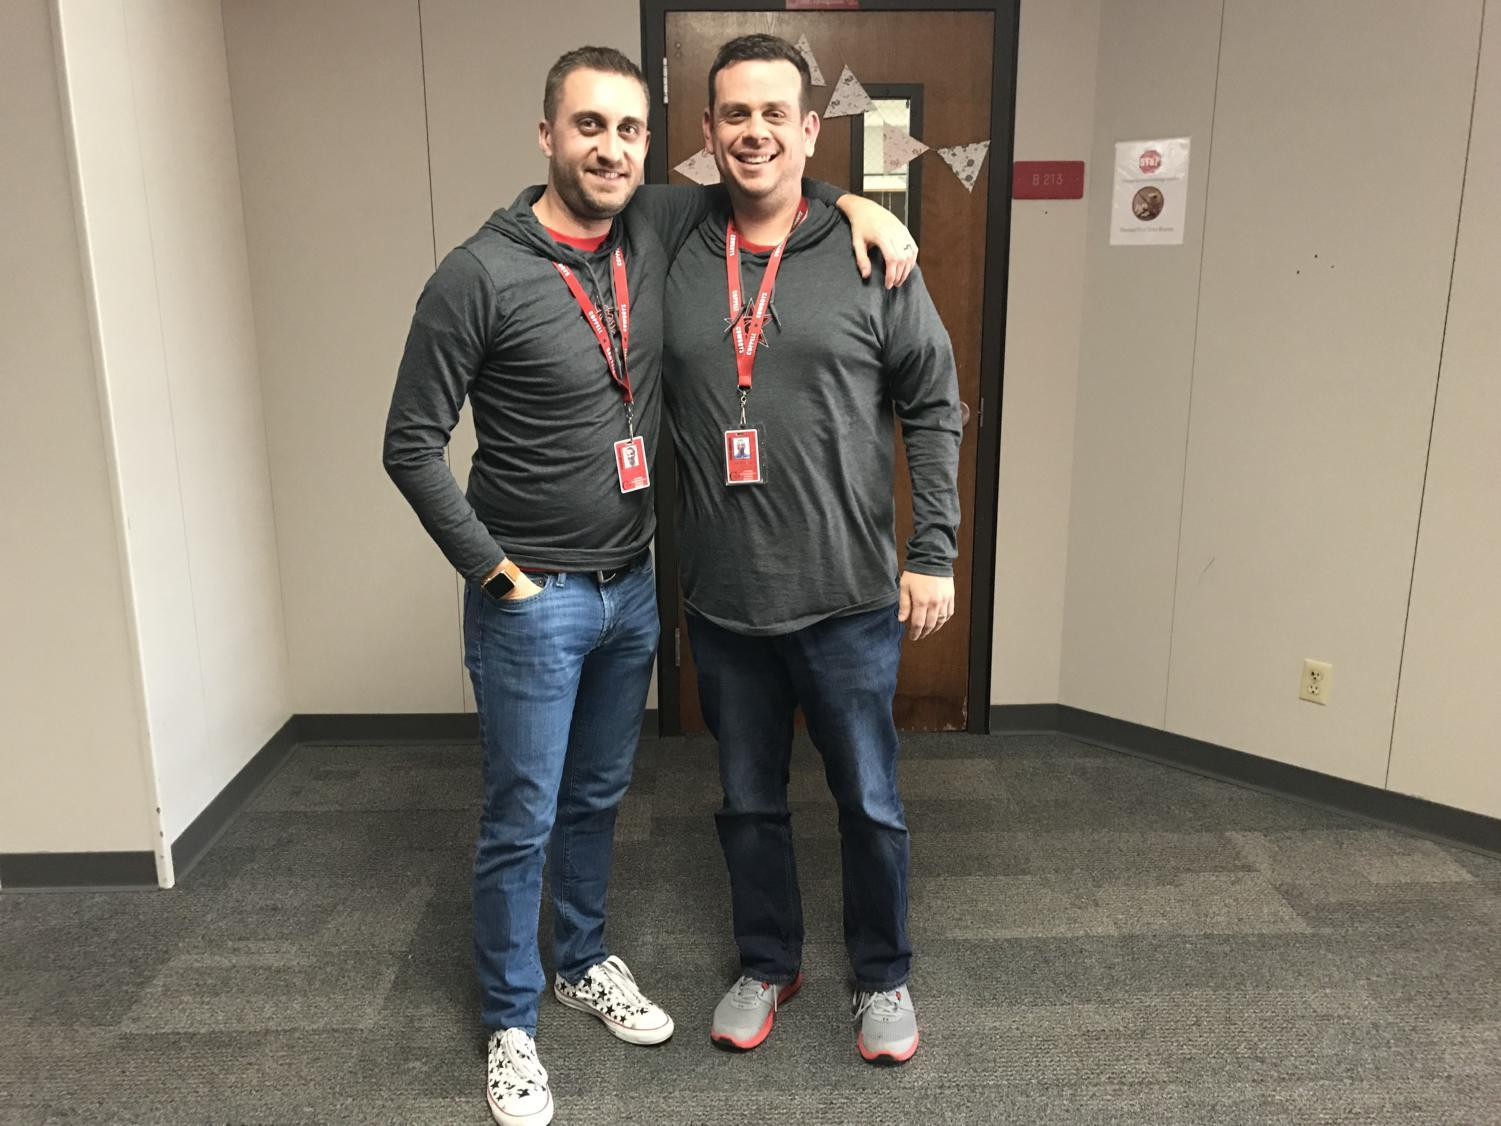 CHS teachers, AP Human Geography teacher Ryan Simpson and AP Human Geography Chris Caussey, are two of the 45 faculty at CHS expected to be at CHS 9. CHS 9 is a new campus of CHS made entirely for incoming freshmen students attending in the 2018-19 school year.